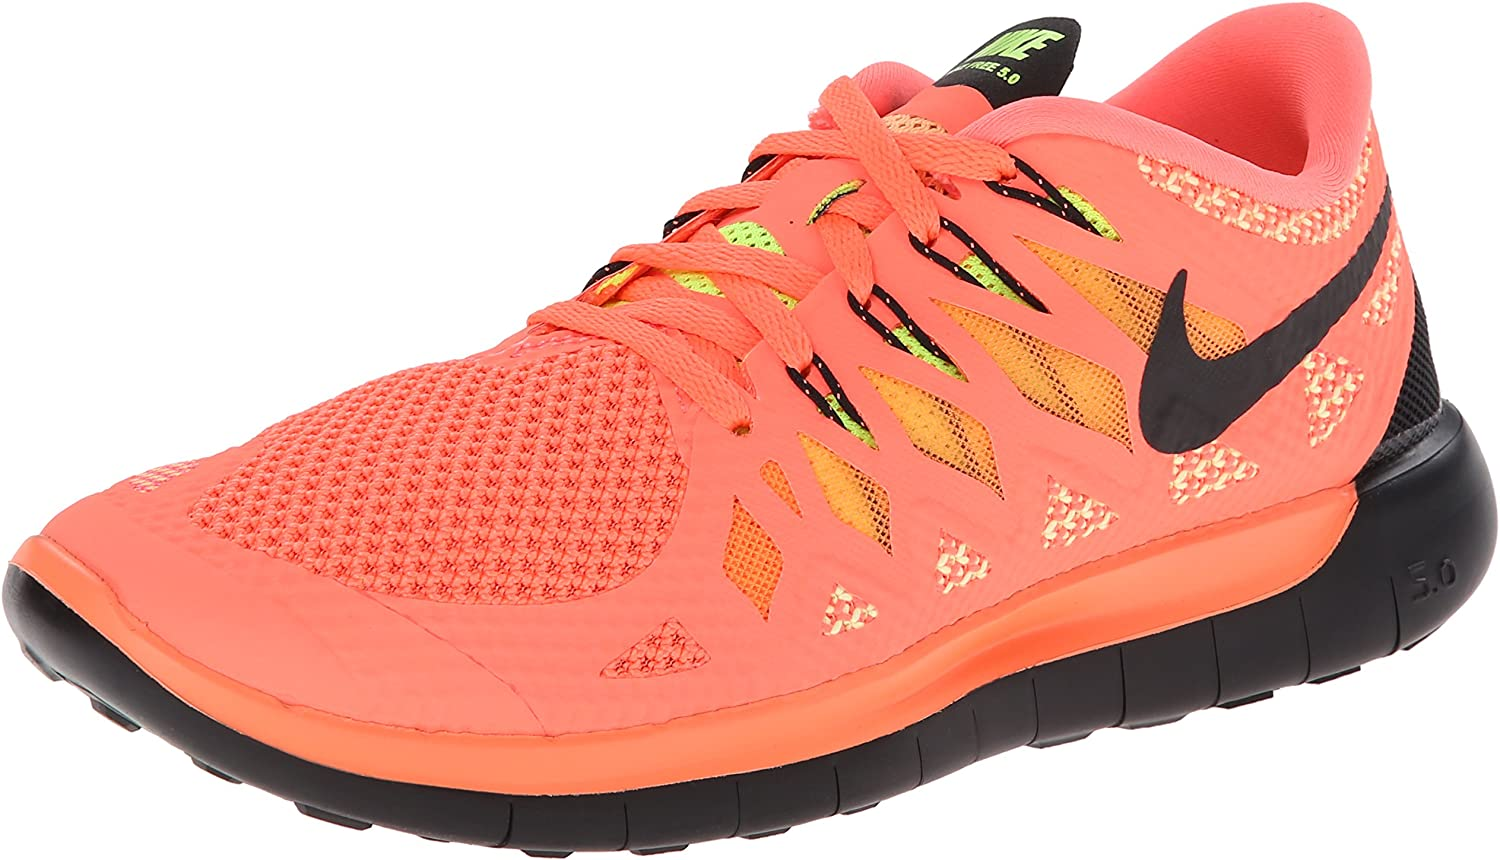 NIKE Womens Free 5.0 2014 – Bright Mango Volt Peach Cream Black